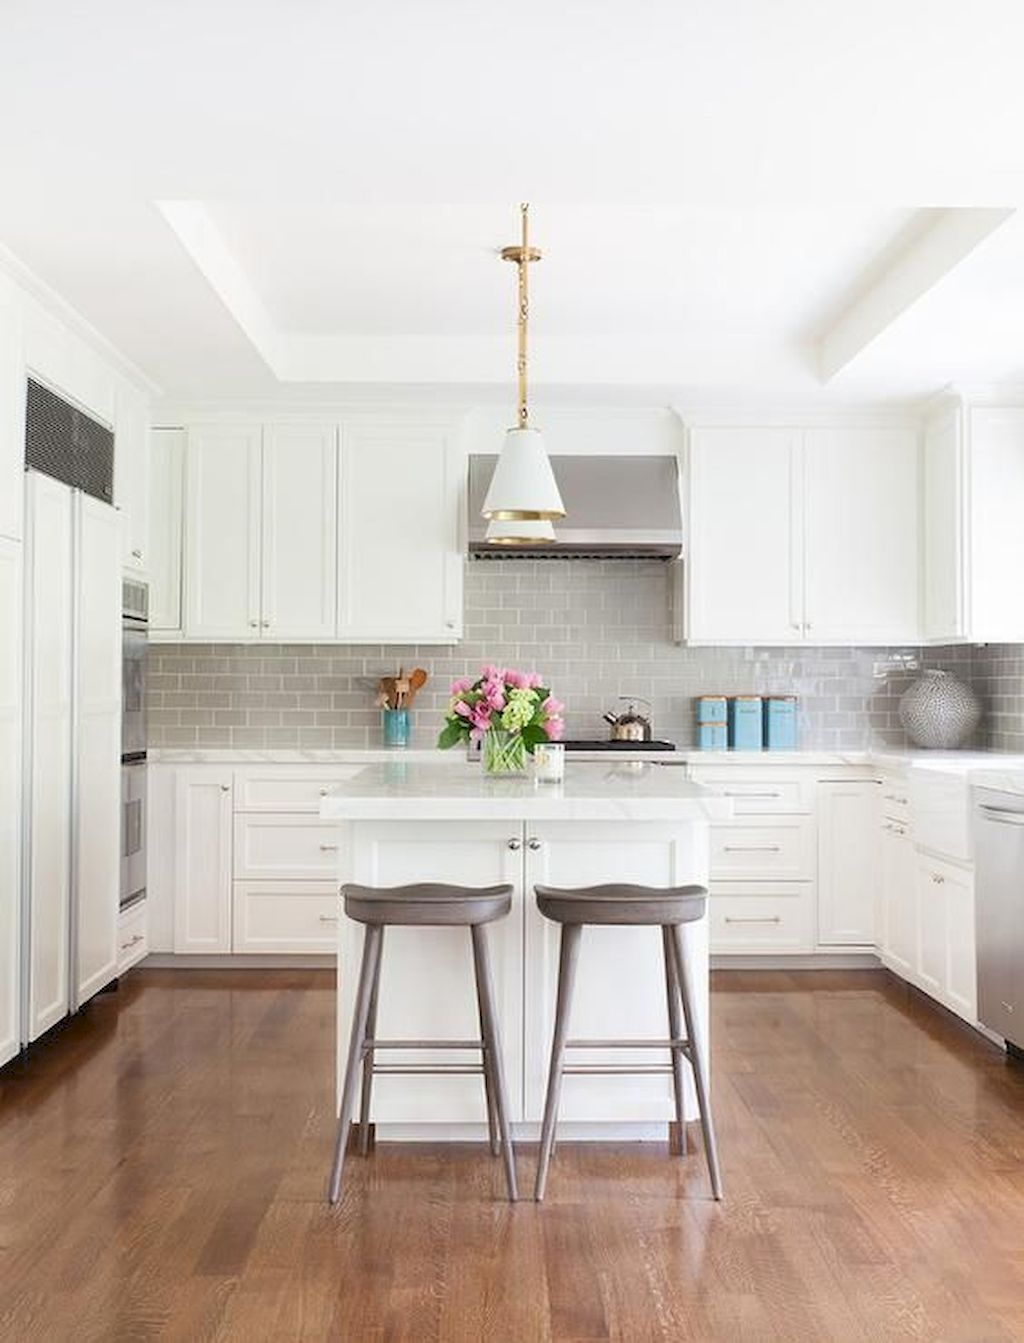 How to Make Best White Kitchen - Home decor kitchen, Kitchen design, Kitchen concepts, Trendy kitchen tile, Kitchen cabinets makeover, Grey kitchen cabinets - All white kitchens always have a white cabinet and white ceiling, haven't they  The white kitchen concept could be really special since everyone must agree with its beauty but only some who dare to…